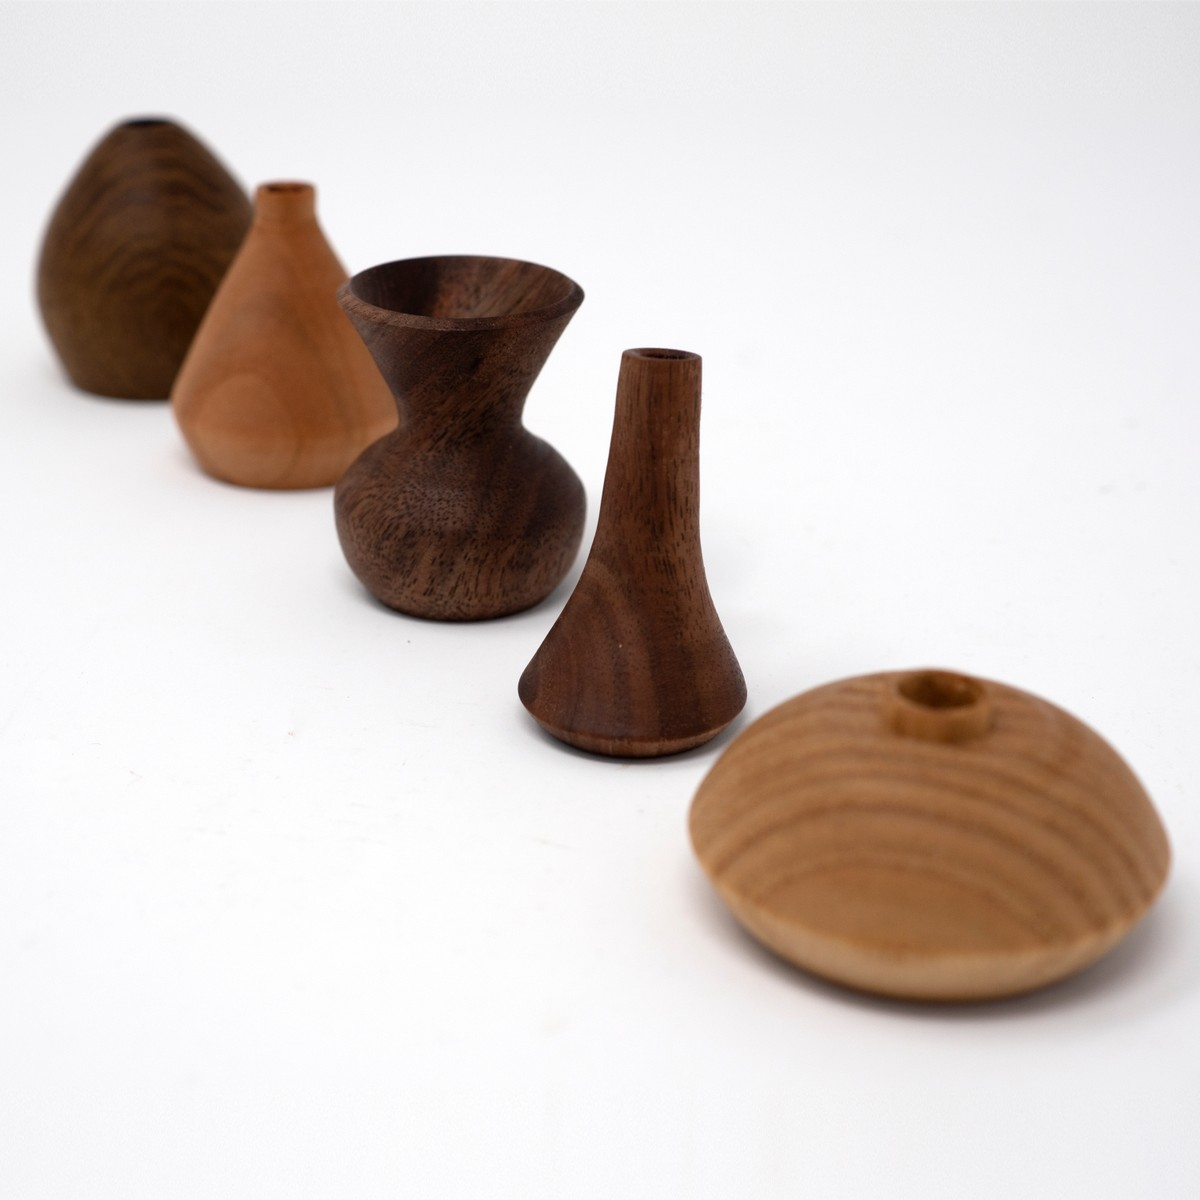 Photo of Miniature Wooden Vases: Lucie Rie Collection